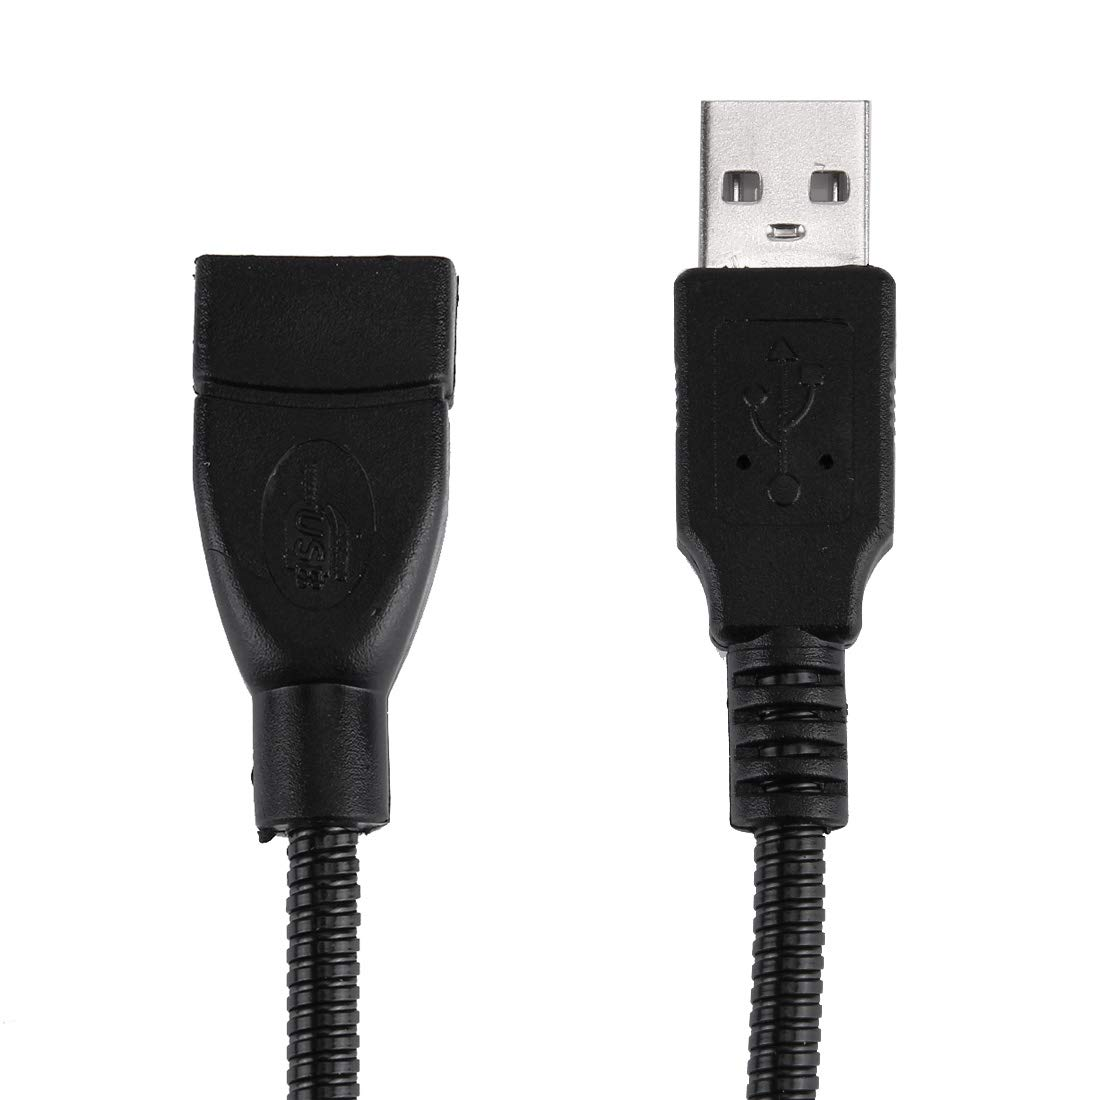 Black Computer Cables 20cm USB 2.0 Female to USB 2.0 Male Metal Soft Hose Adapter Cable Color : Black